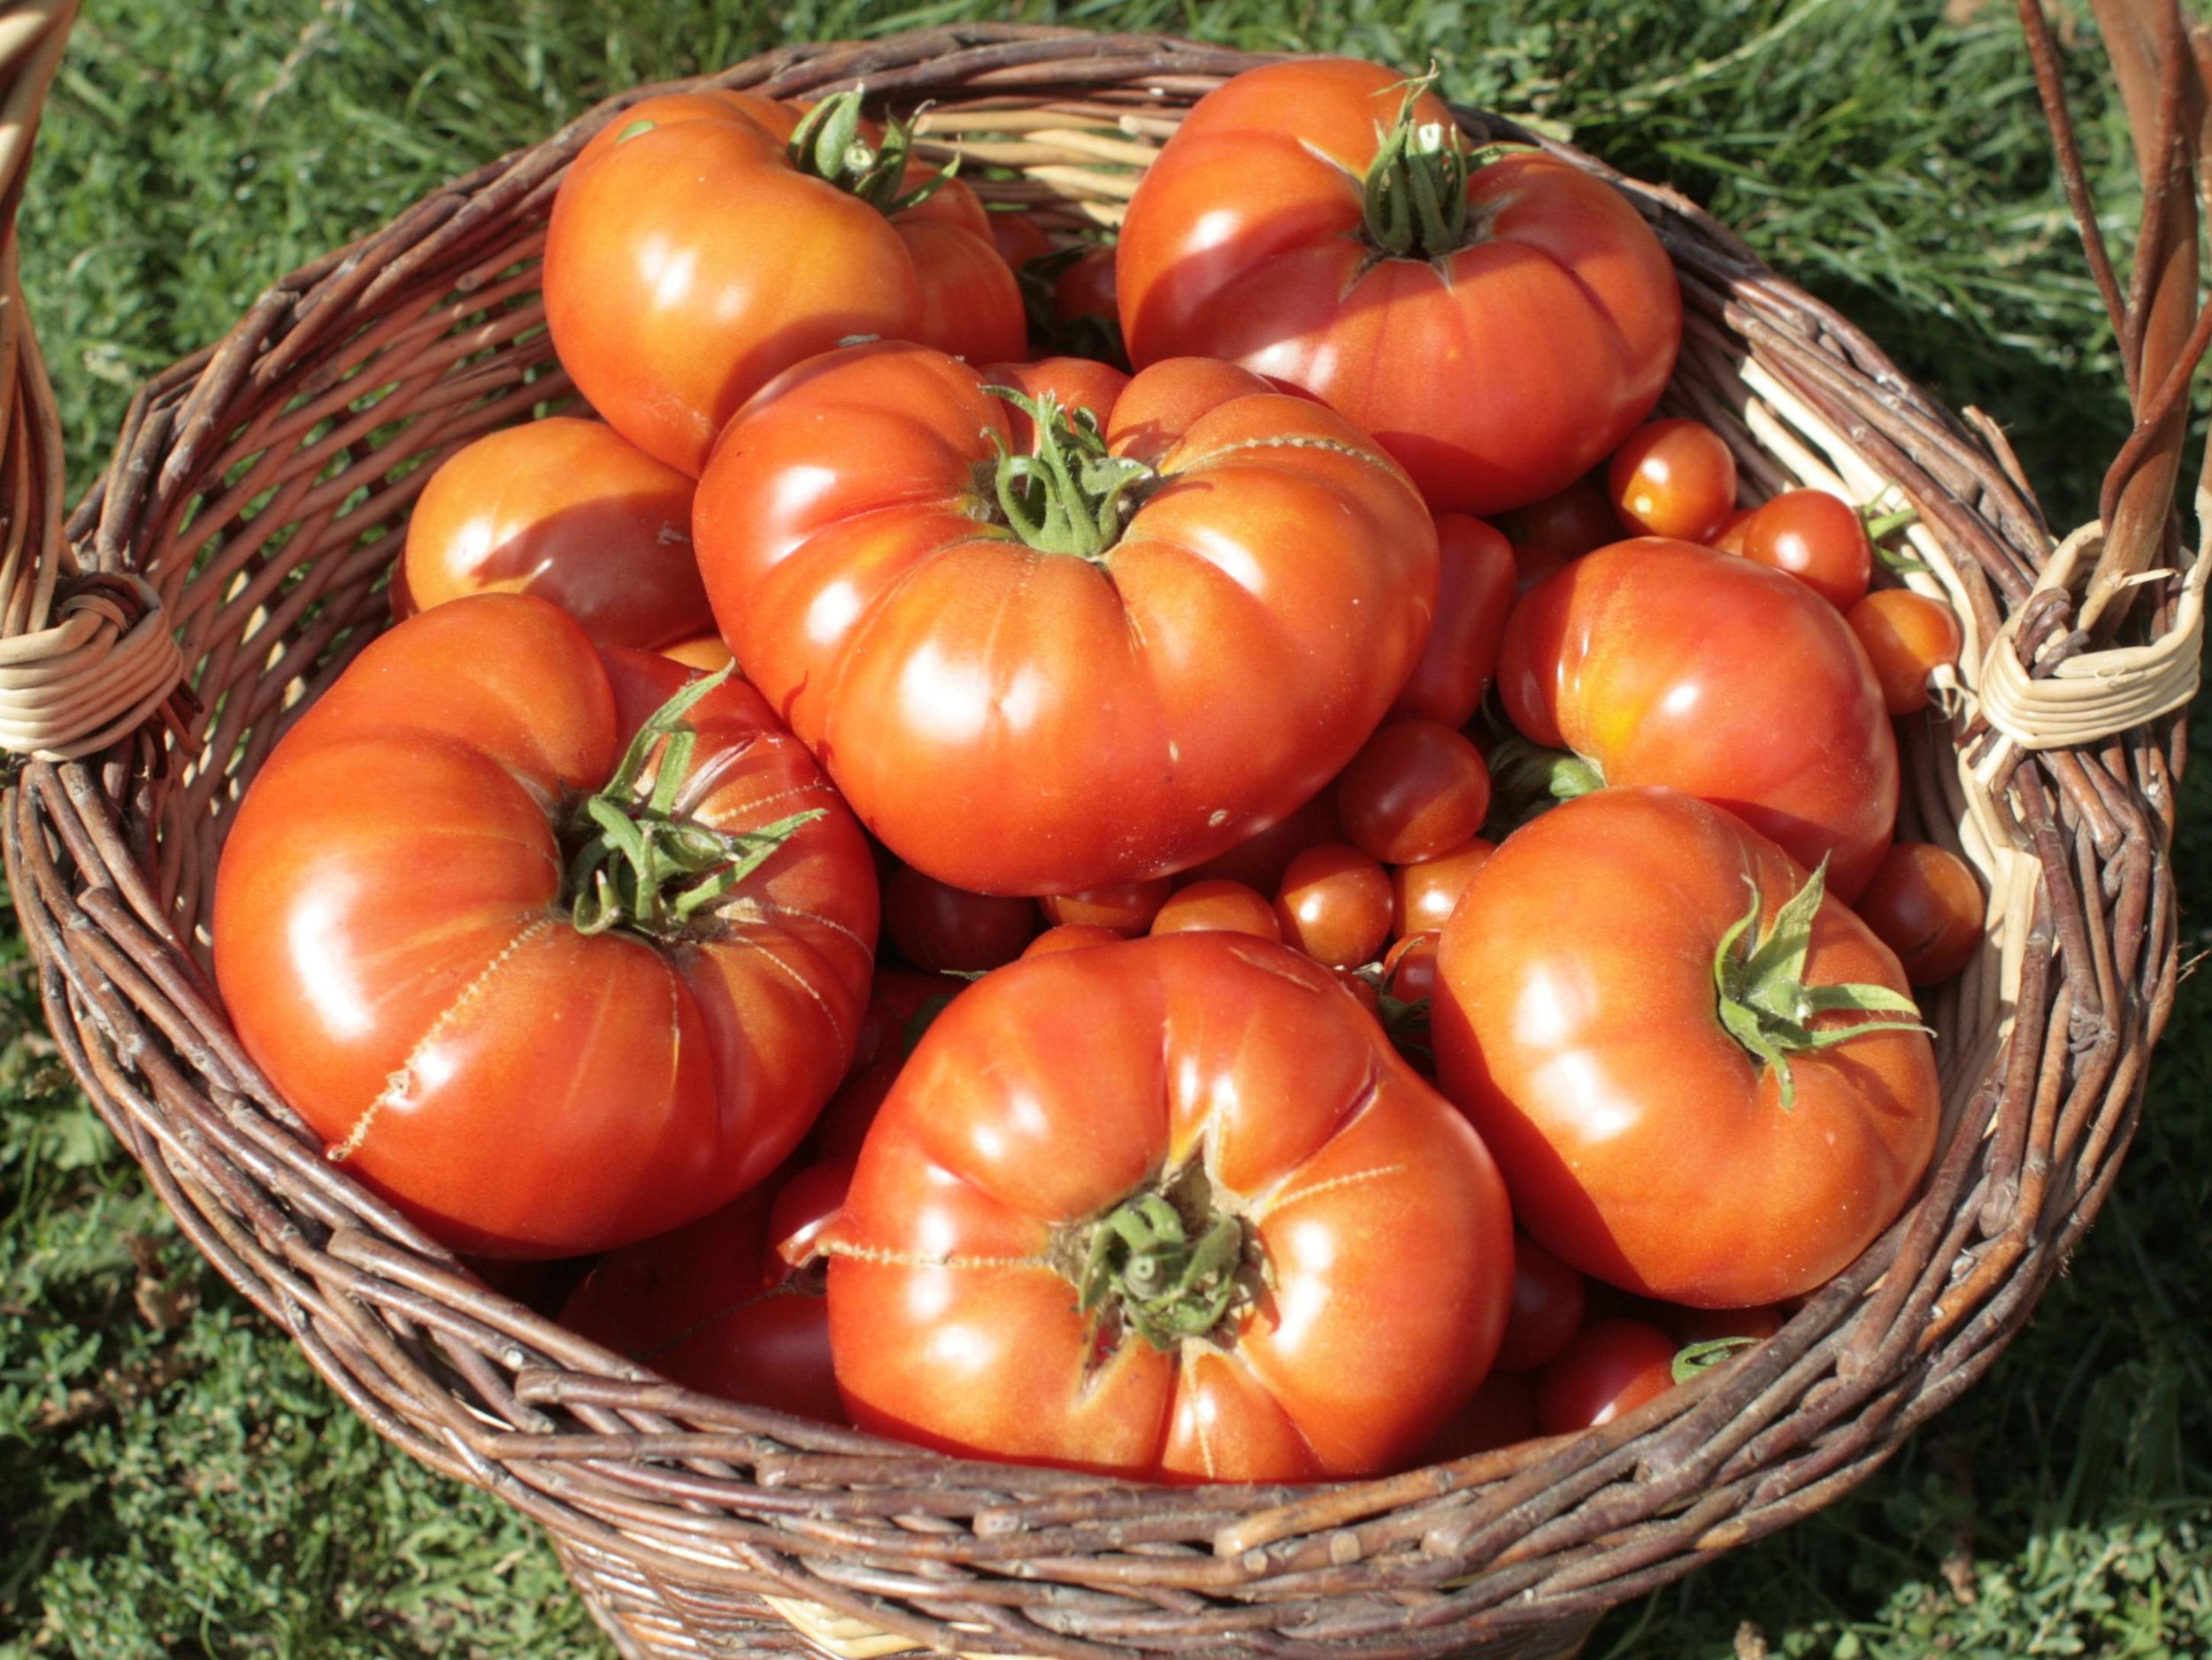 Made with our own farm fresh tomatoes! -